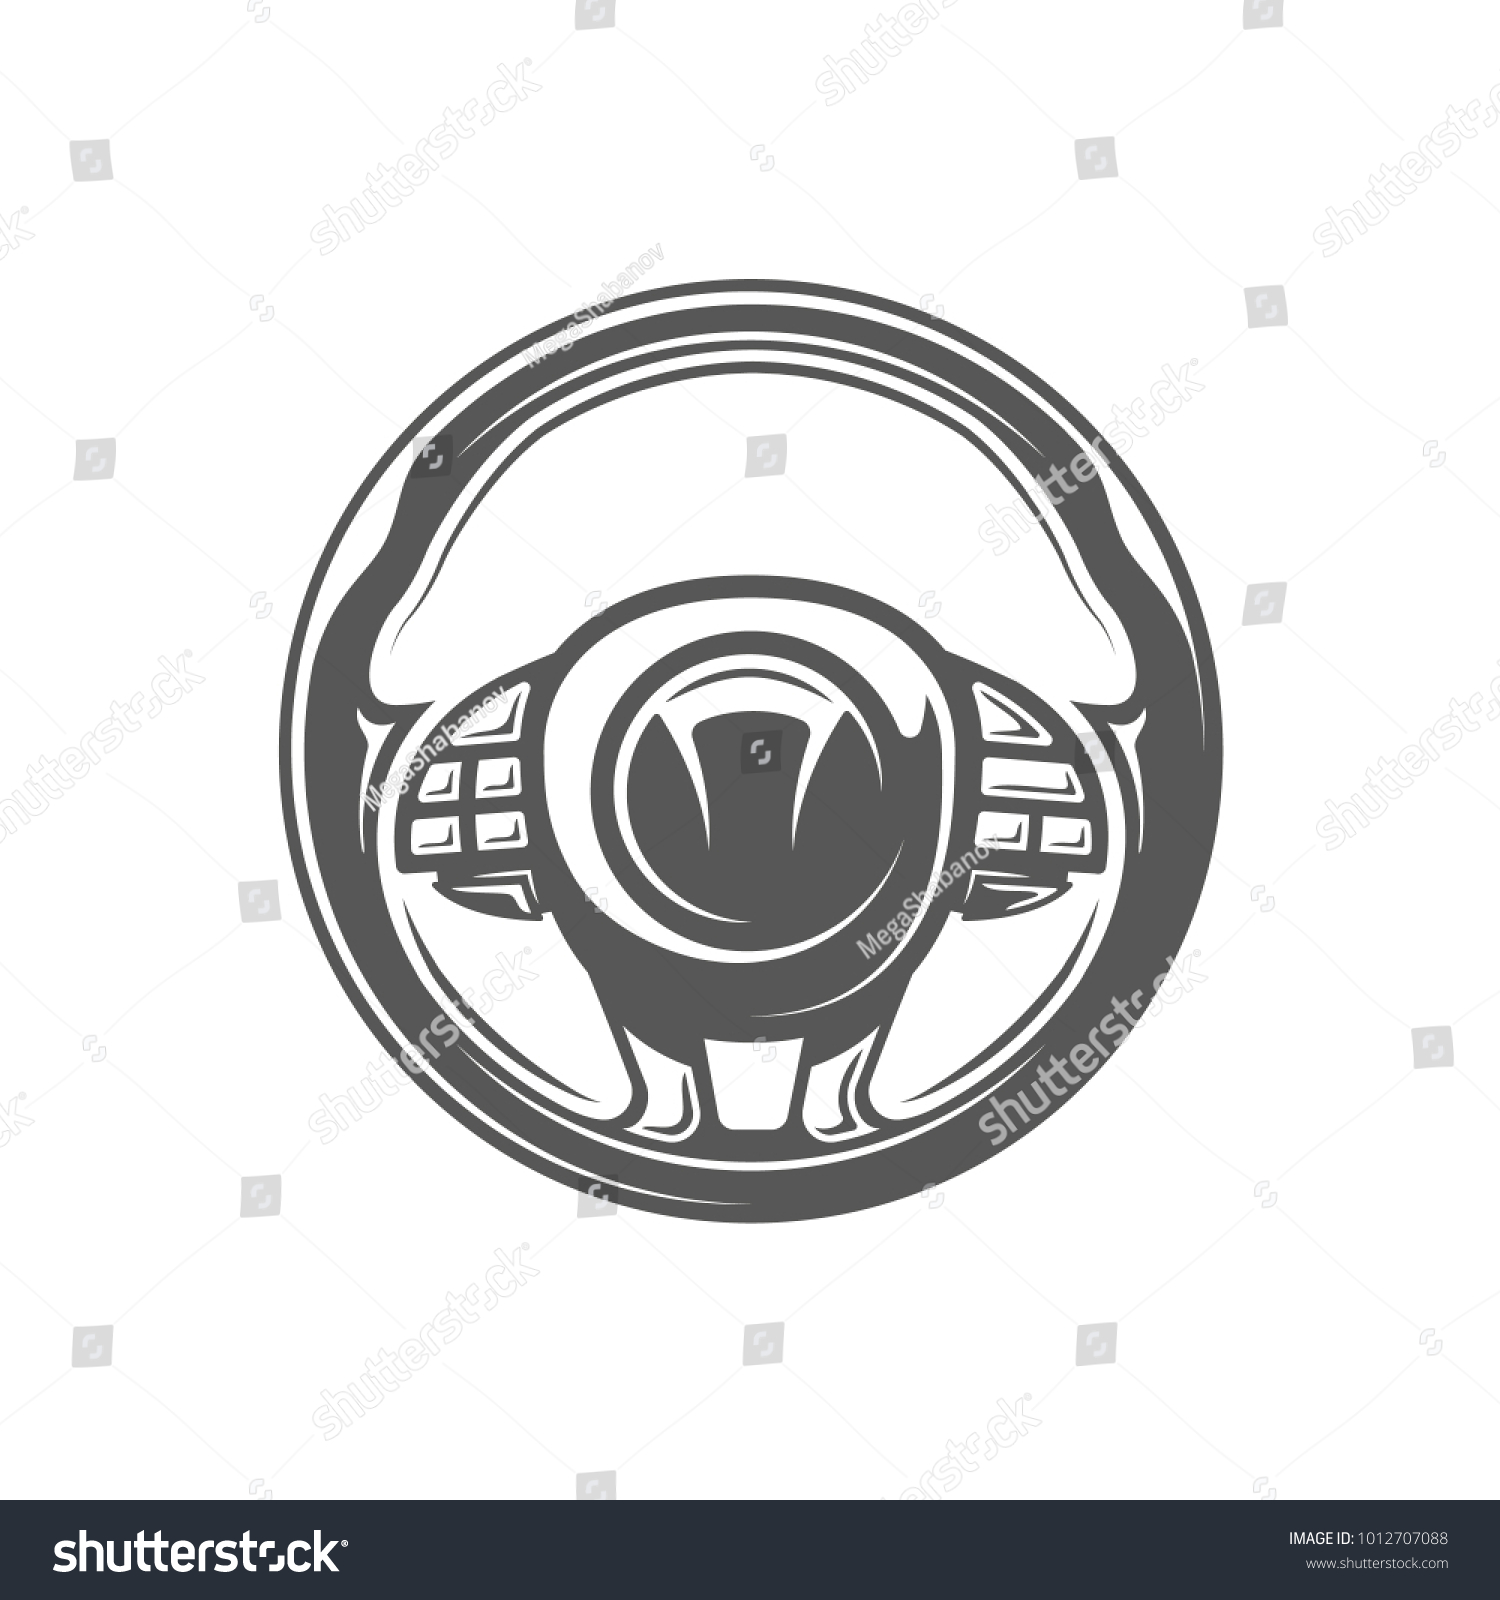 Element car service steering wheel isolated stock vector element of the car service steering wheel isolated on white background symbol for car biocorpaavc Choice Image